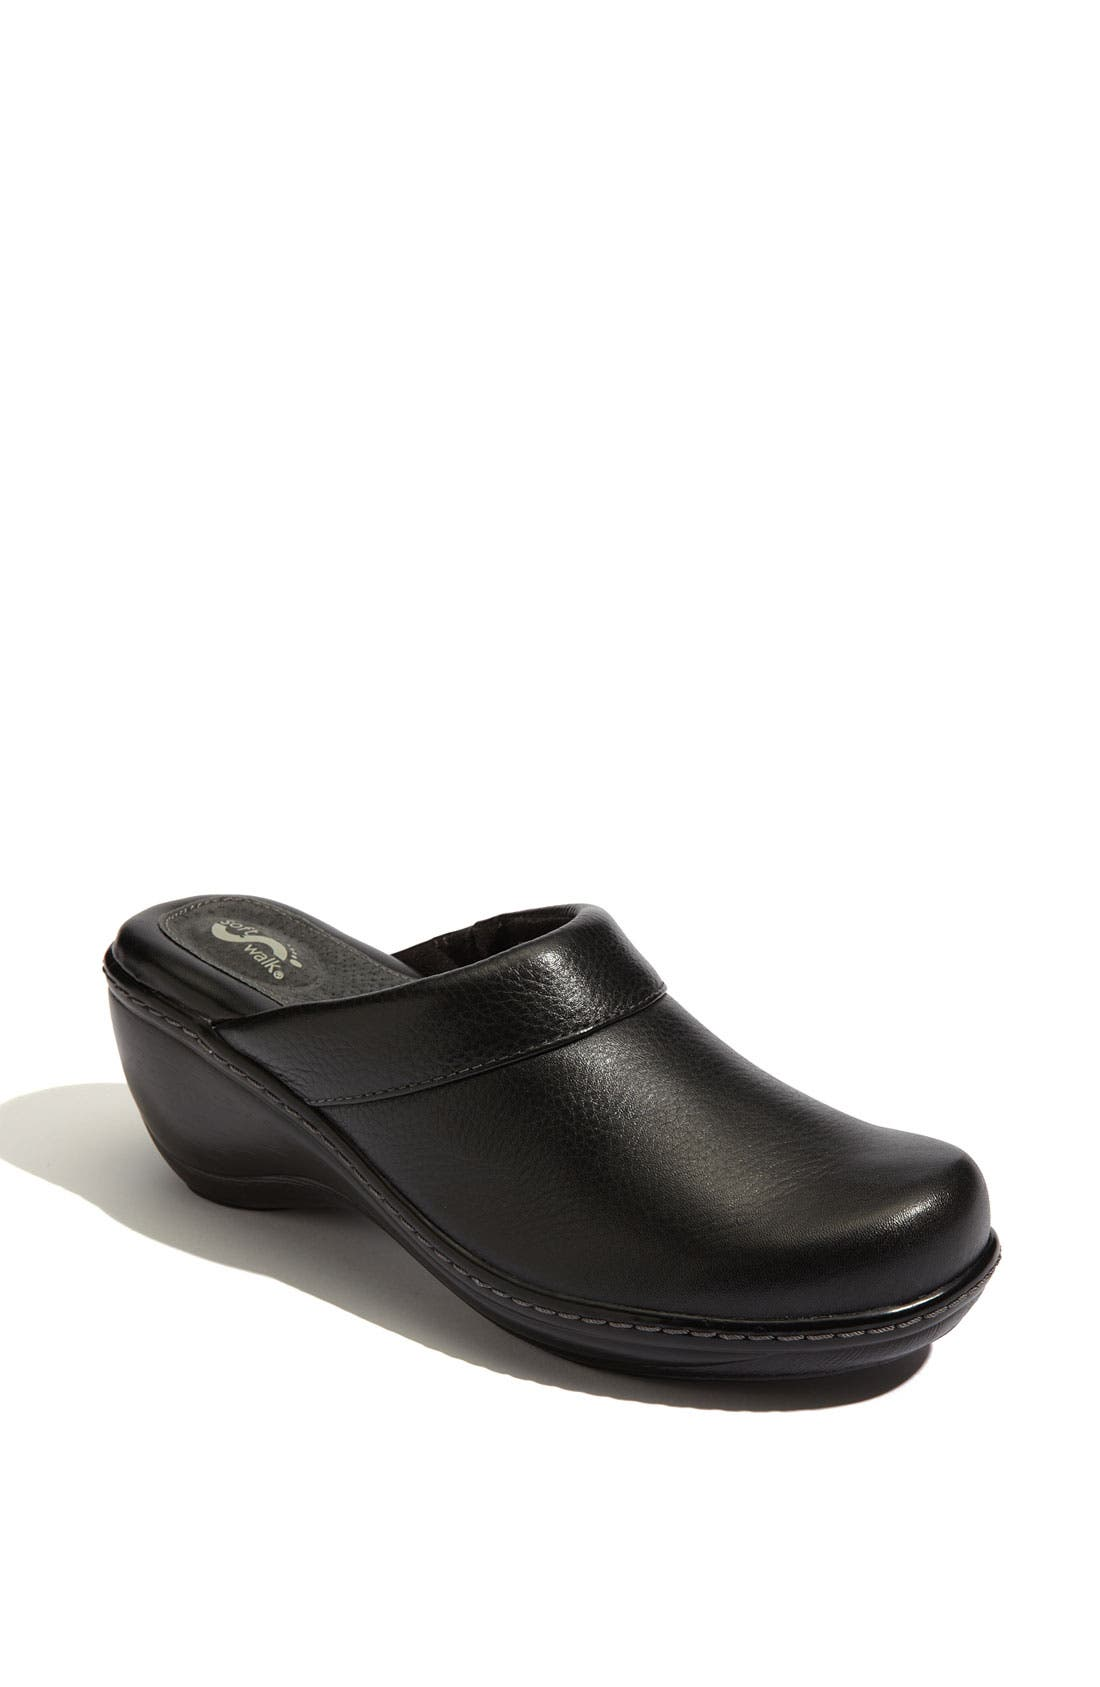 A soft leather clog features a patented eggcrate footbed and a supportive steel shank for ultimate comfort. Style Name: Softwalk \\\'Murietta\\\' Clog. Style Number: 55492 2. Available in stores.